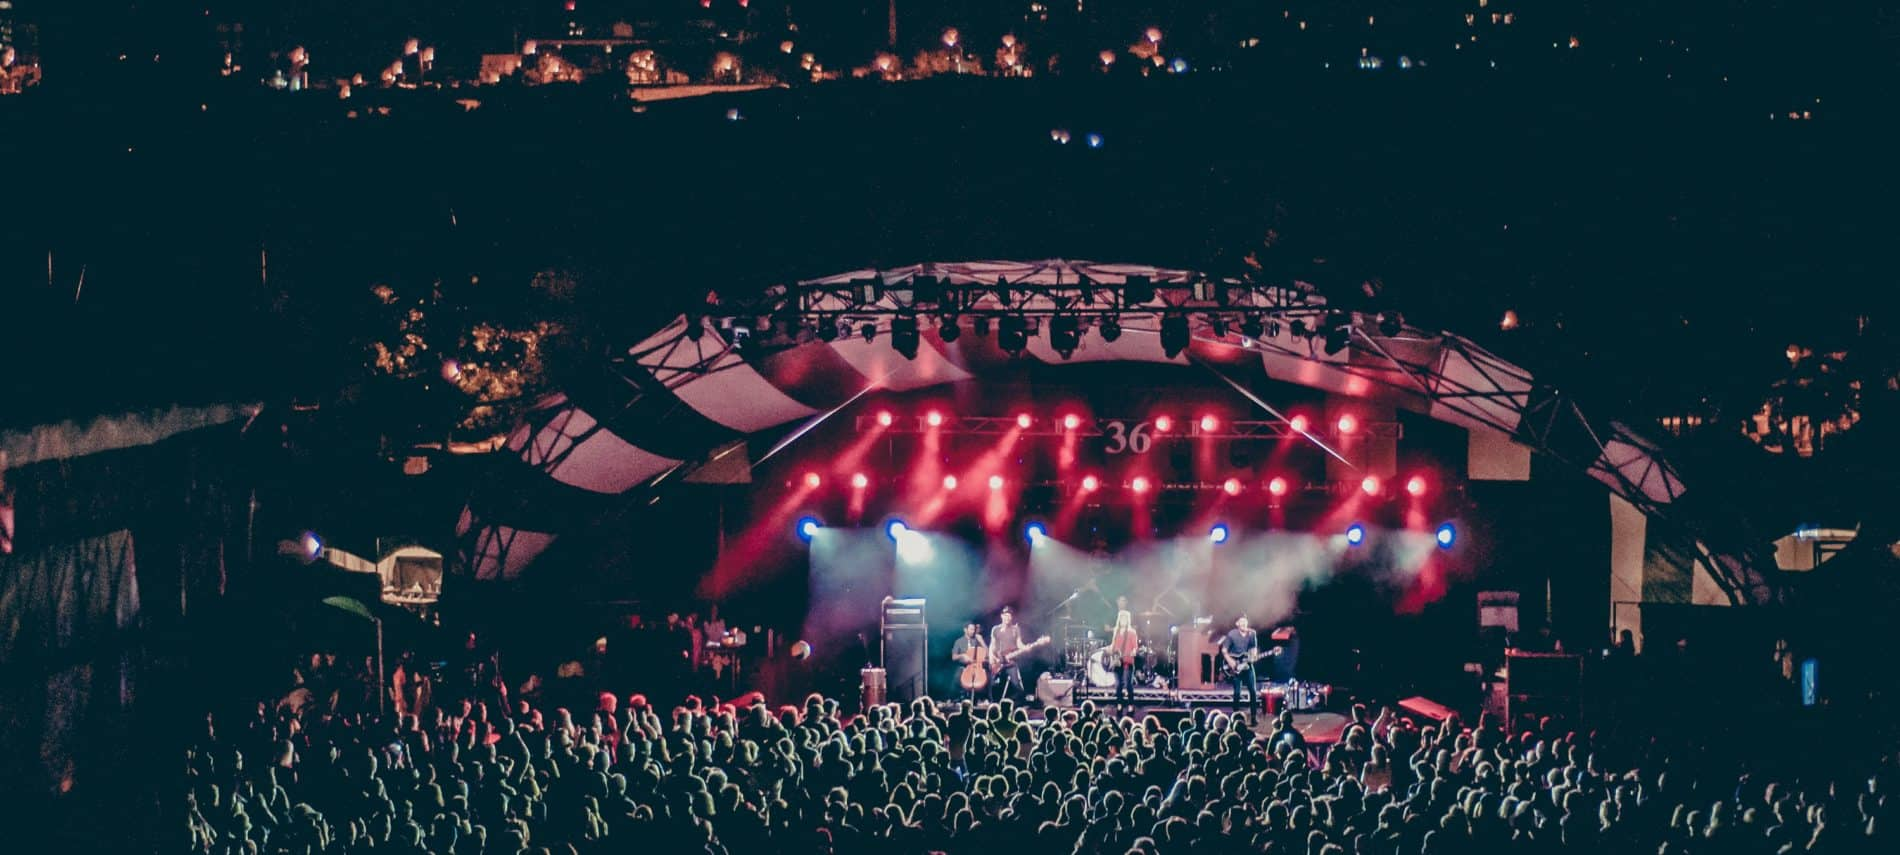 Concert venue packed with fans, band on stage with red spotlights